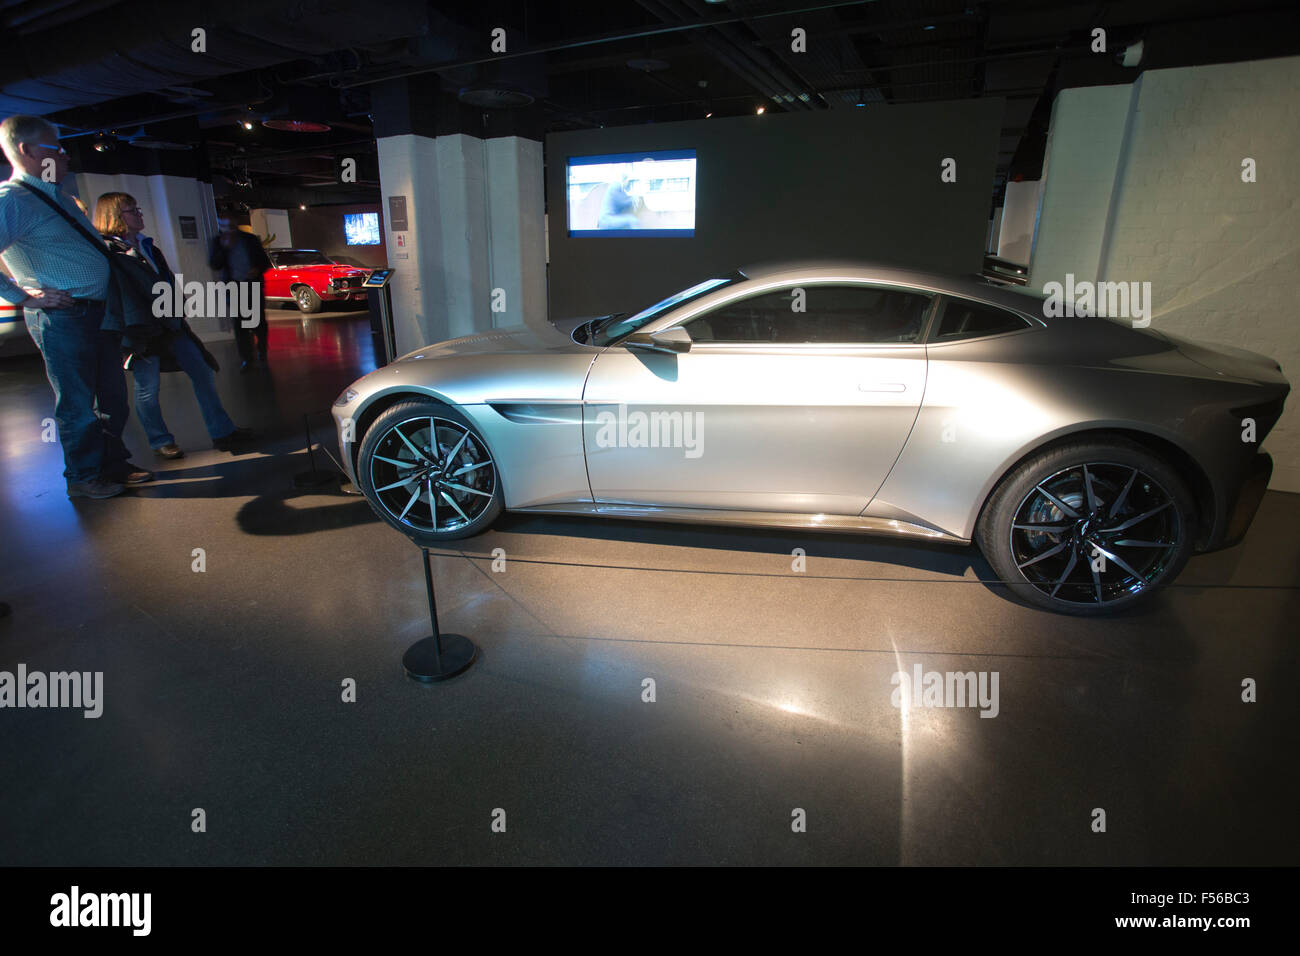 Aston Martin Db10 Stock Photos Aston Martin Db10 Stock Images Alamy